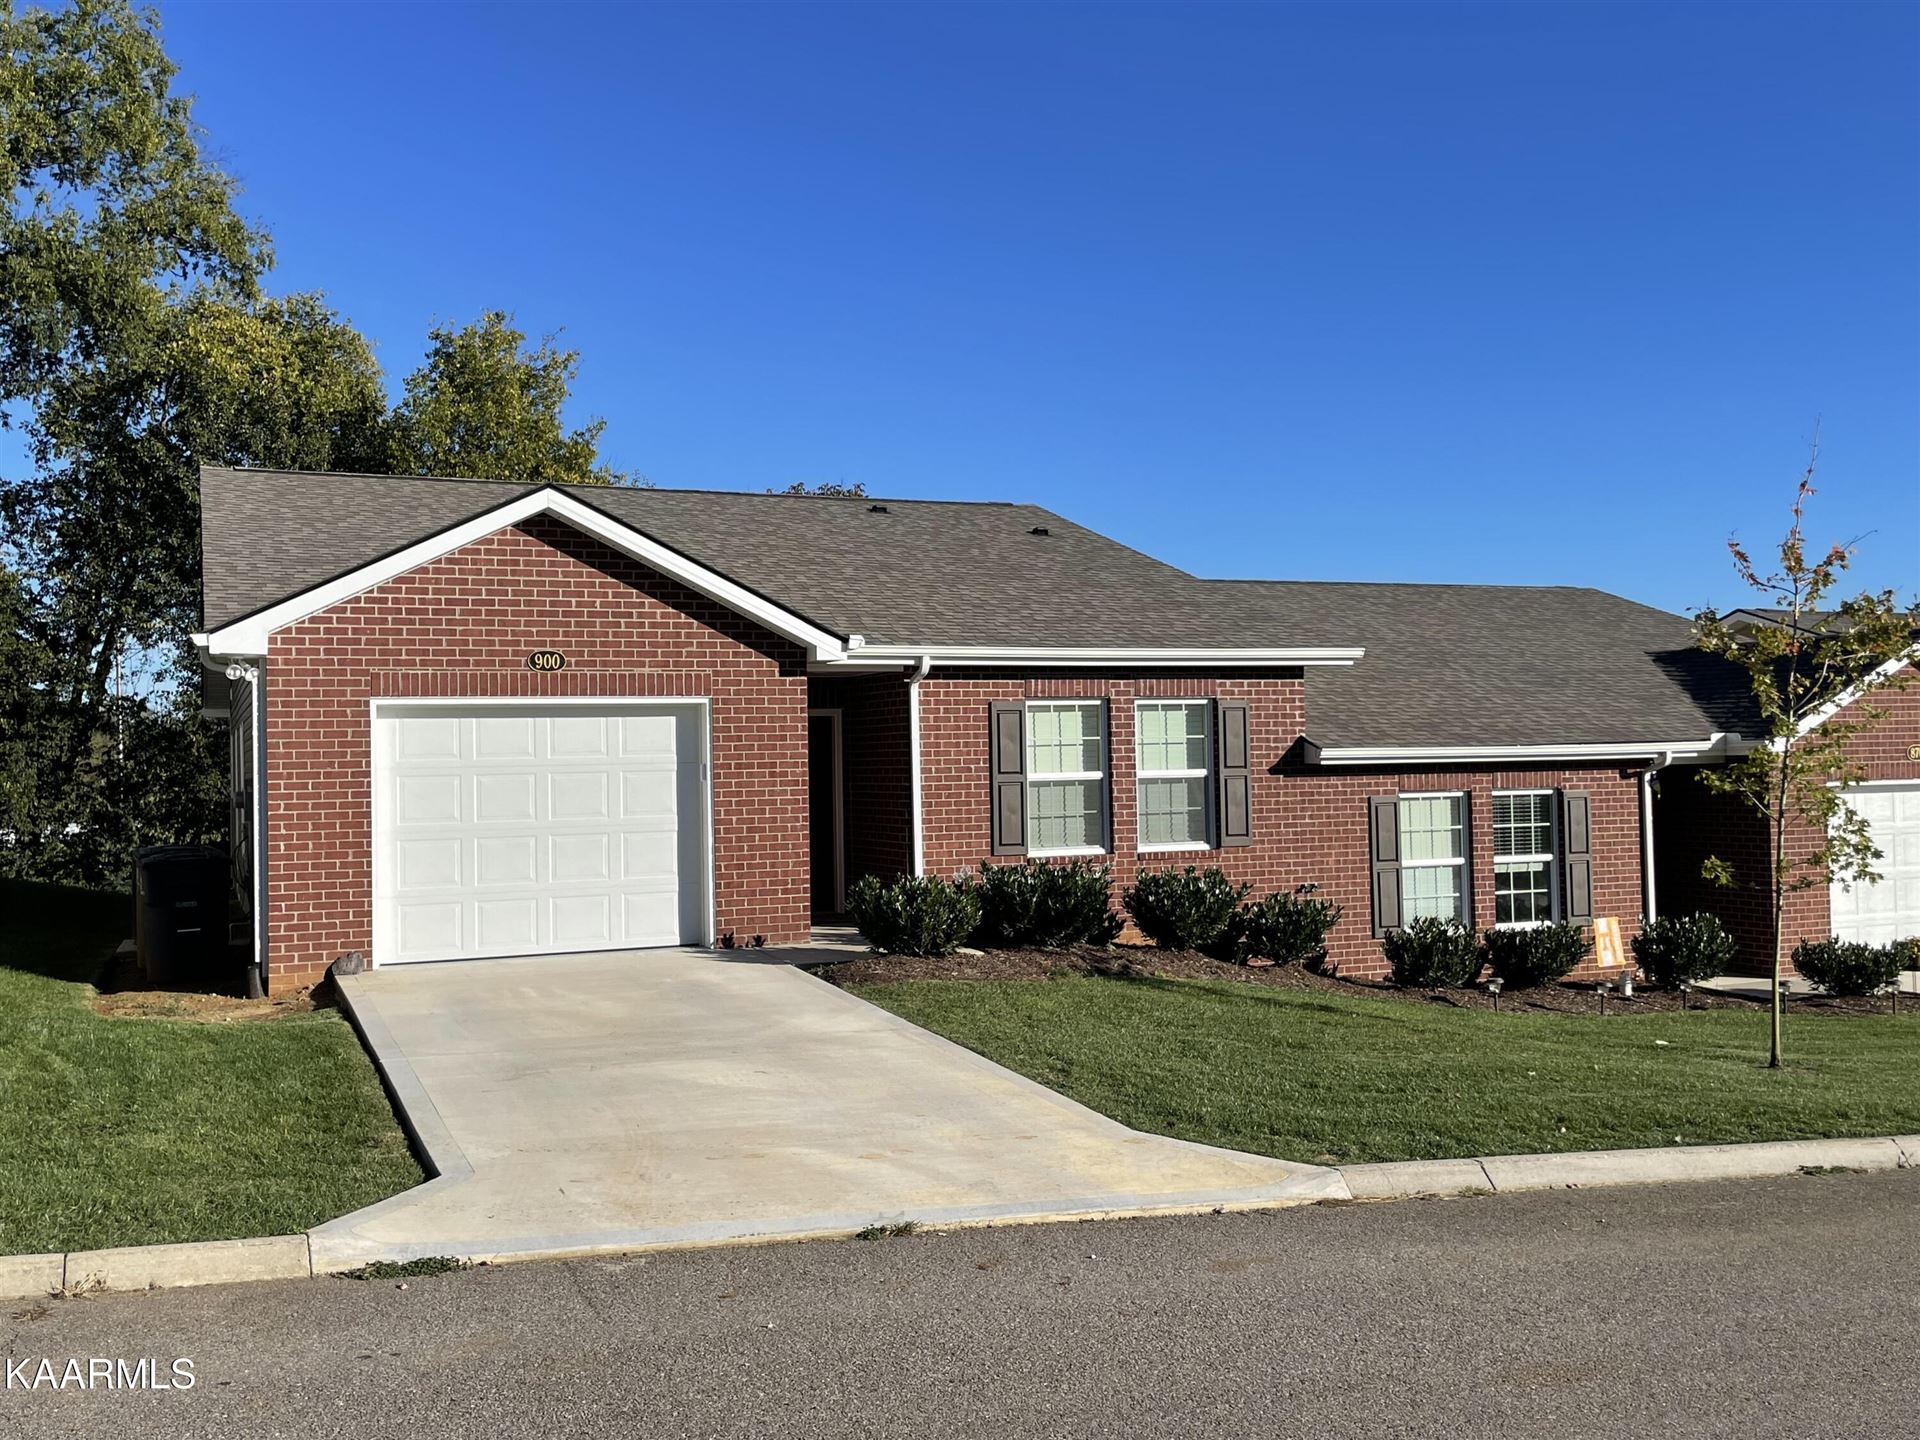 Photo of 900 Spring Park Rd, Knoxville, TN 37914 (MLS # 1171845)